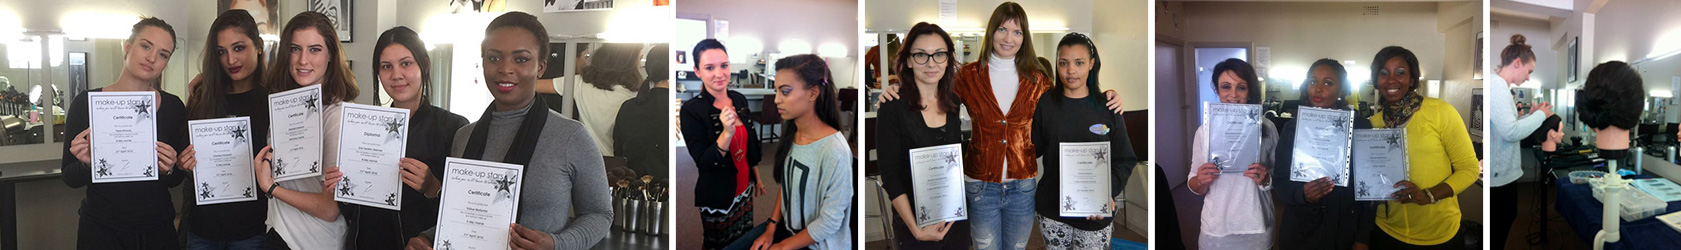 makeup, makeup-course, makeup-courses, study-makeup, full-time-makeup-course, full-time-makeup-courses, part-time-makeup-course, part-time-makeup-courses, learn-makeup, train-makeup, makeup-training, makeup-school, makeup-class, makeup-academy, makeup-course-cape-town, makeup-courses-cape-town, study-makeup-cape-town, full-time-makeup-course-cape-town, full-time-makeup-courses-cape-town, part-time-makeup-course-cape-town, part-time-makeup-courses-cape-town